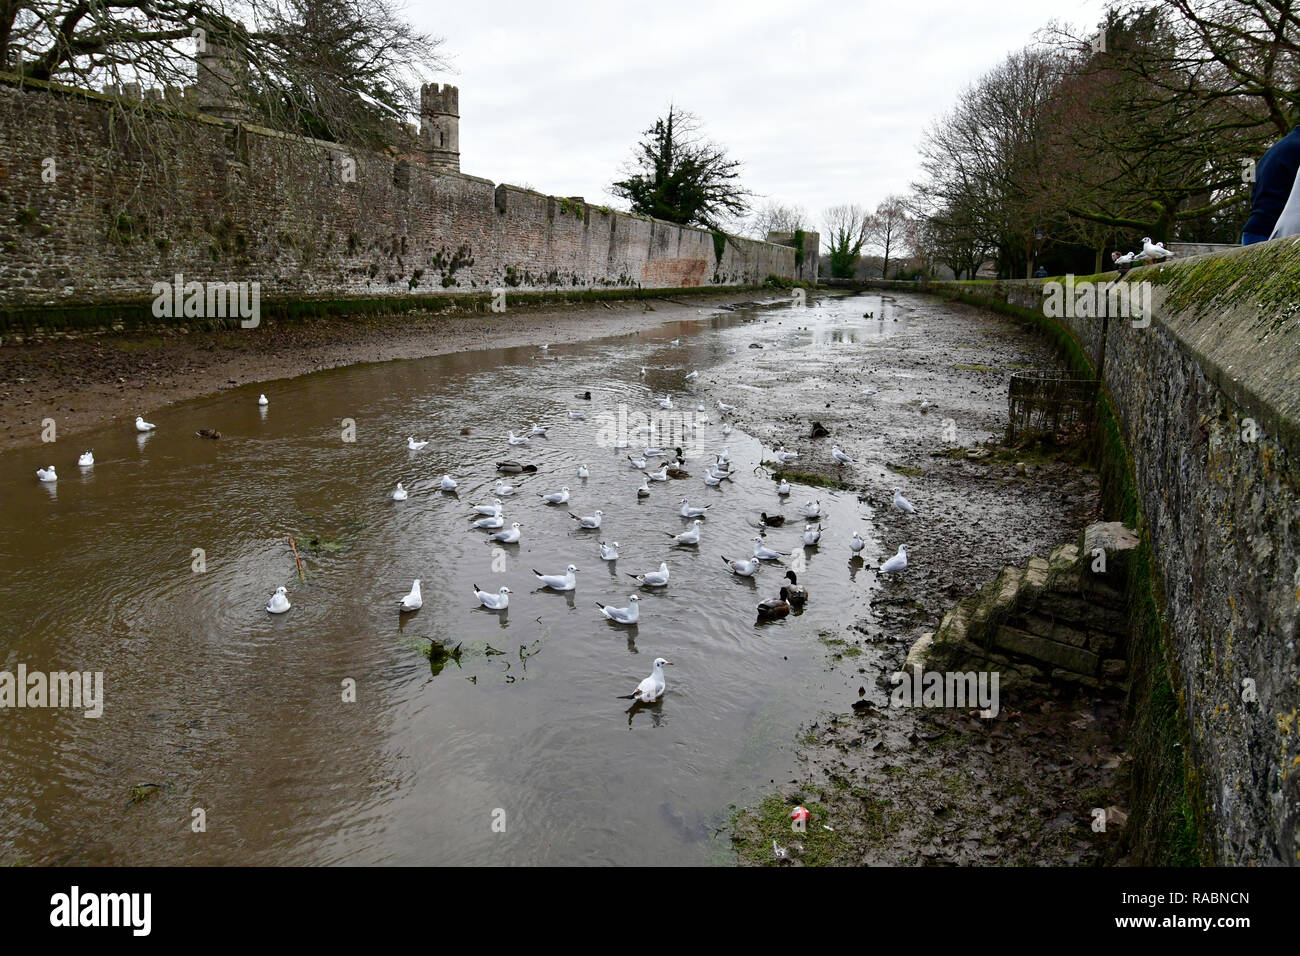 Wells, Somerset, UK. 3rd Jan 2019. Bishop's Palace Moat in Wells Somerset drained on the advice of the Enviornment agency over the New year to reduce the levels of silt and weed. It has not any negitive impact downstream since first starting 10 years ago. Credit: Robert Timoney/Alamy Live News - Stock Image